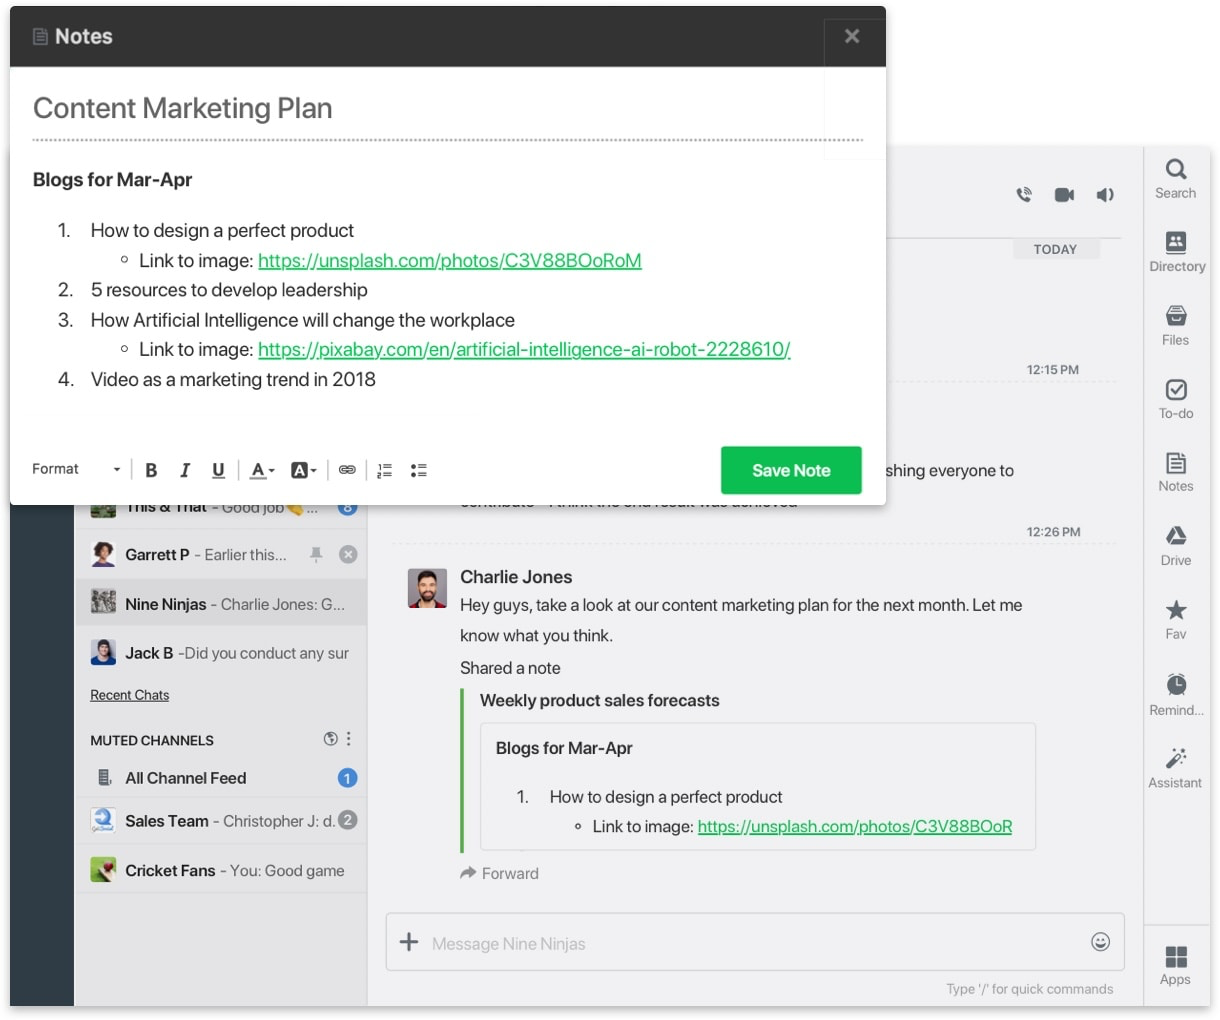 Create notes and collaborate with teams on the go